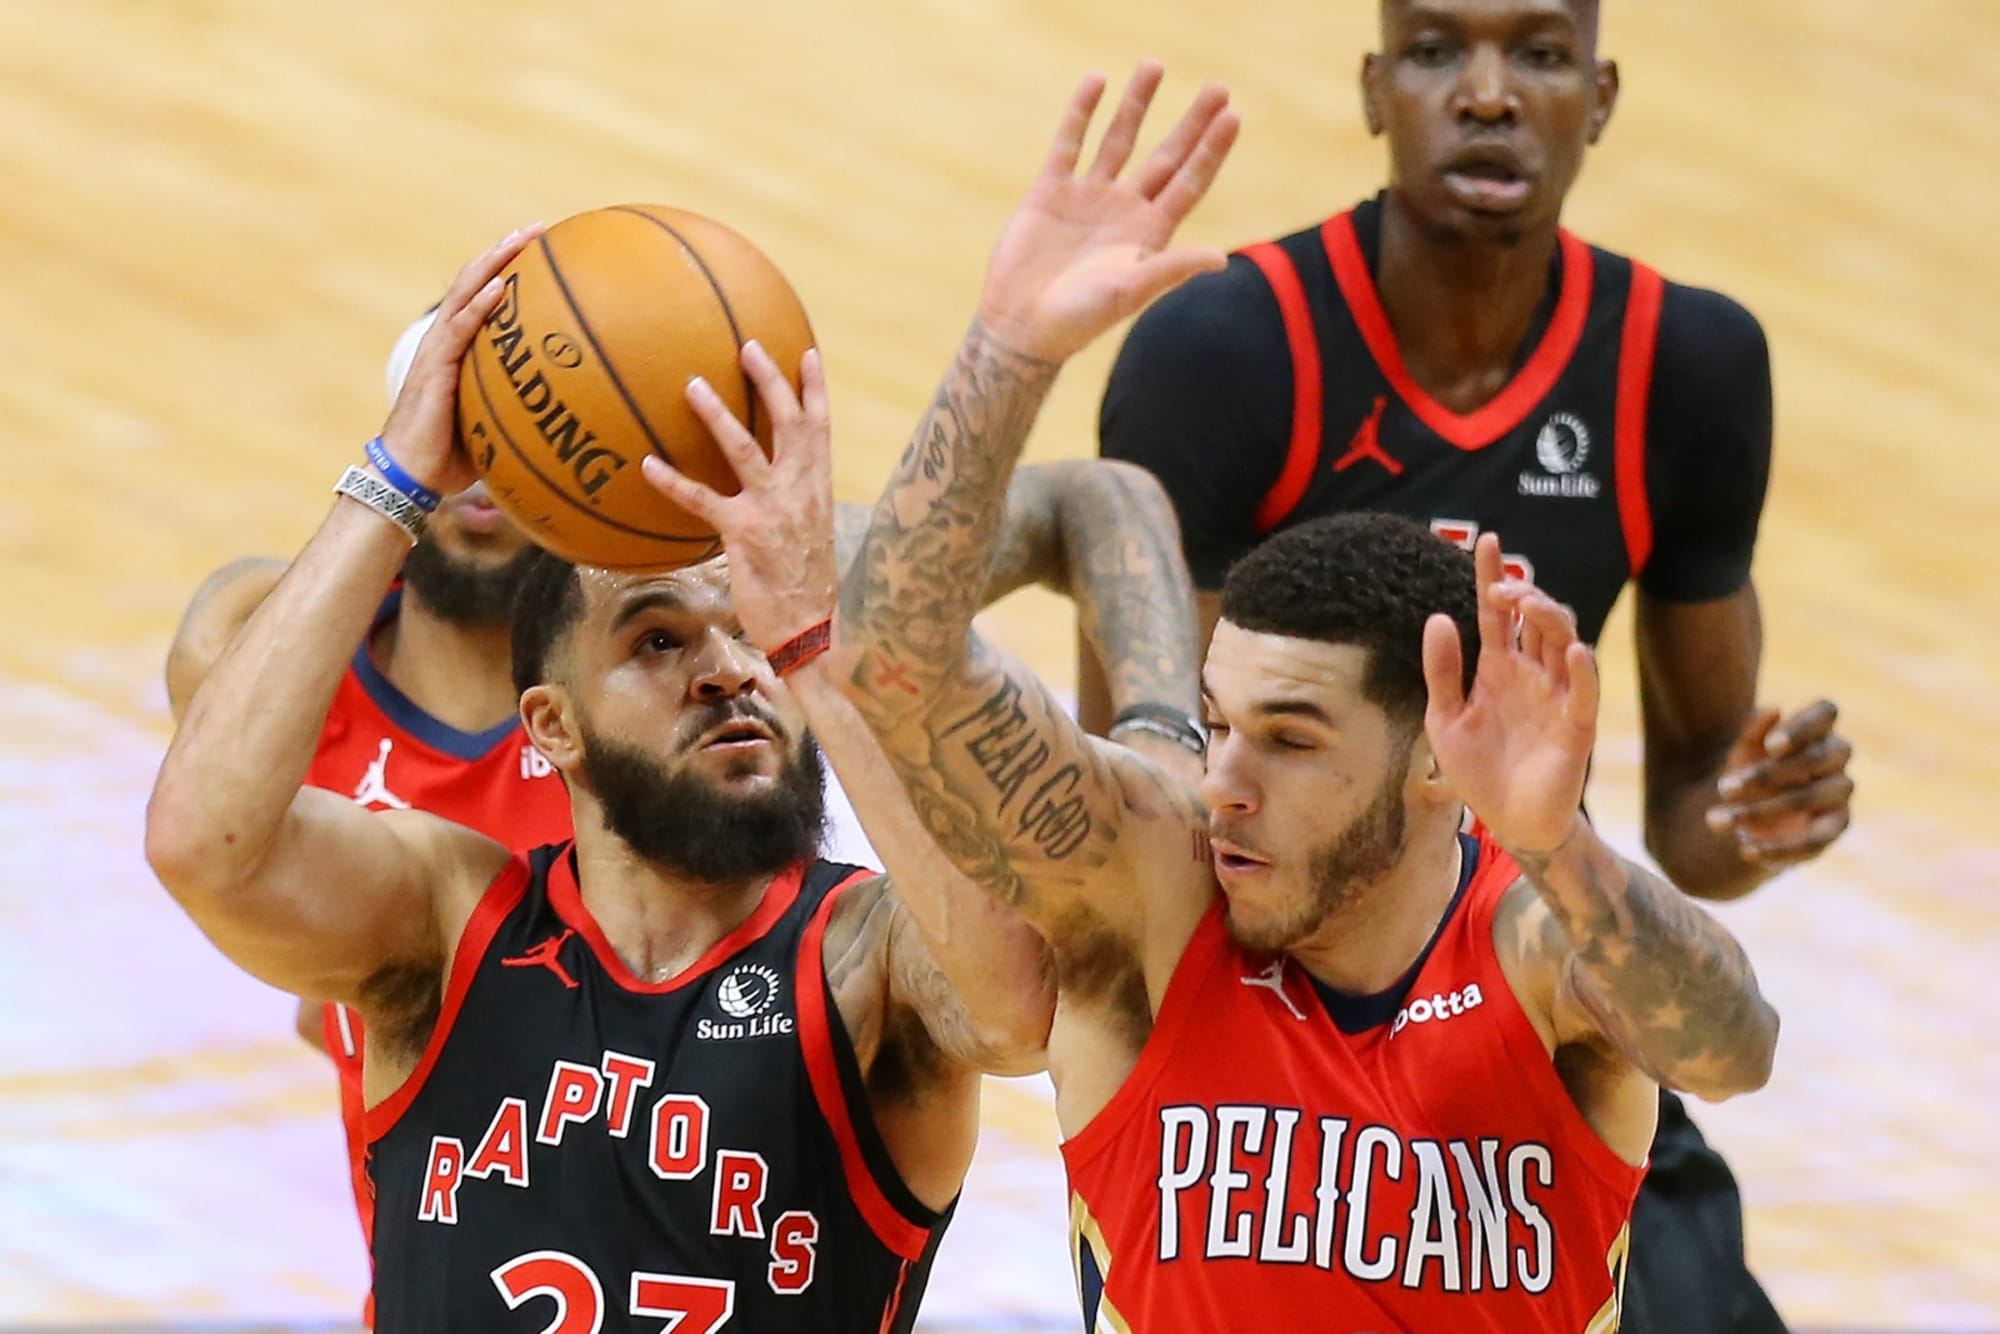 Key takeaways from the Toronto Raptors loss against the Pelicans